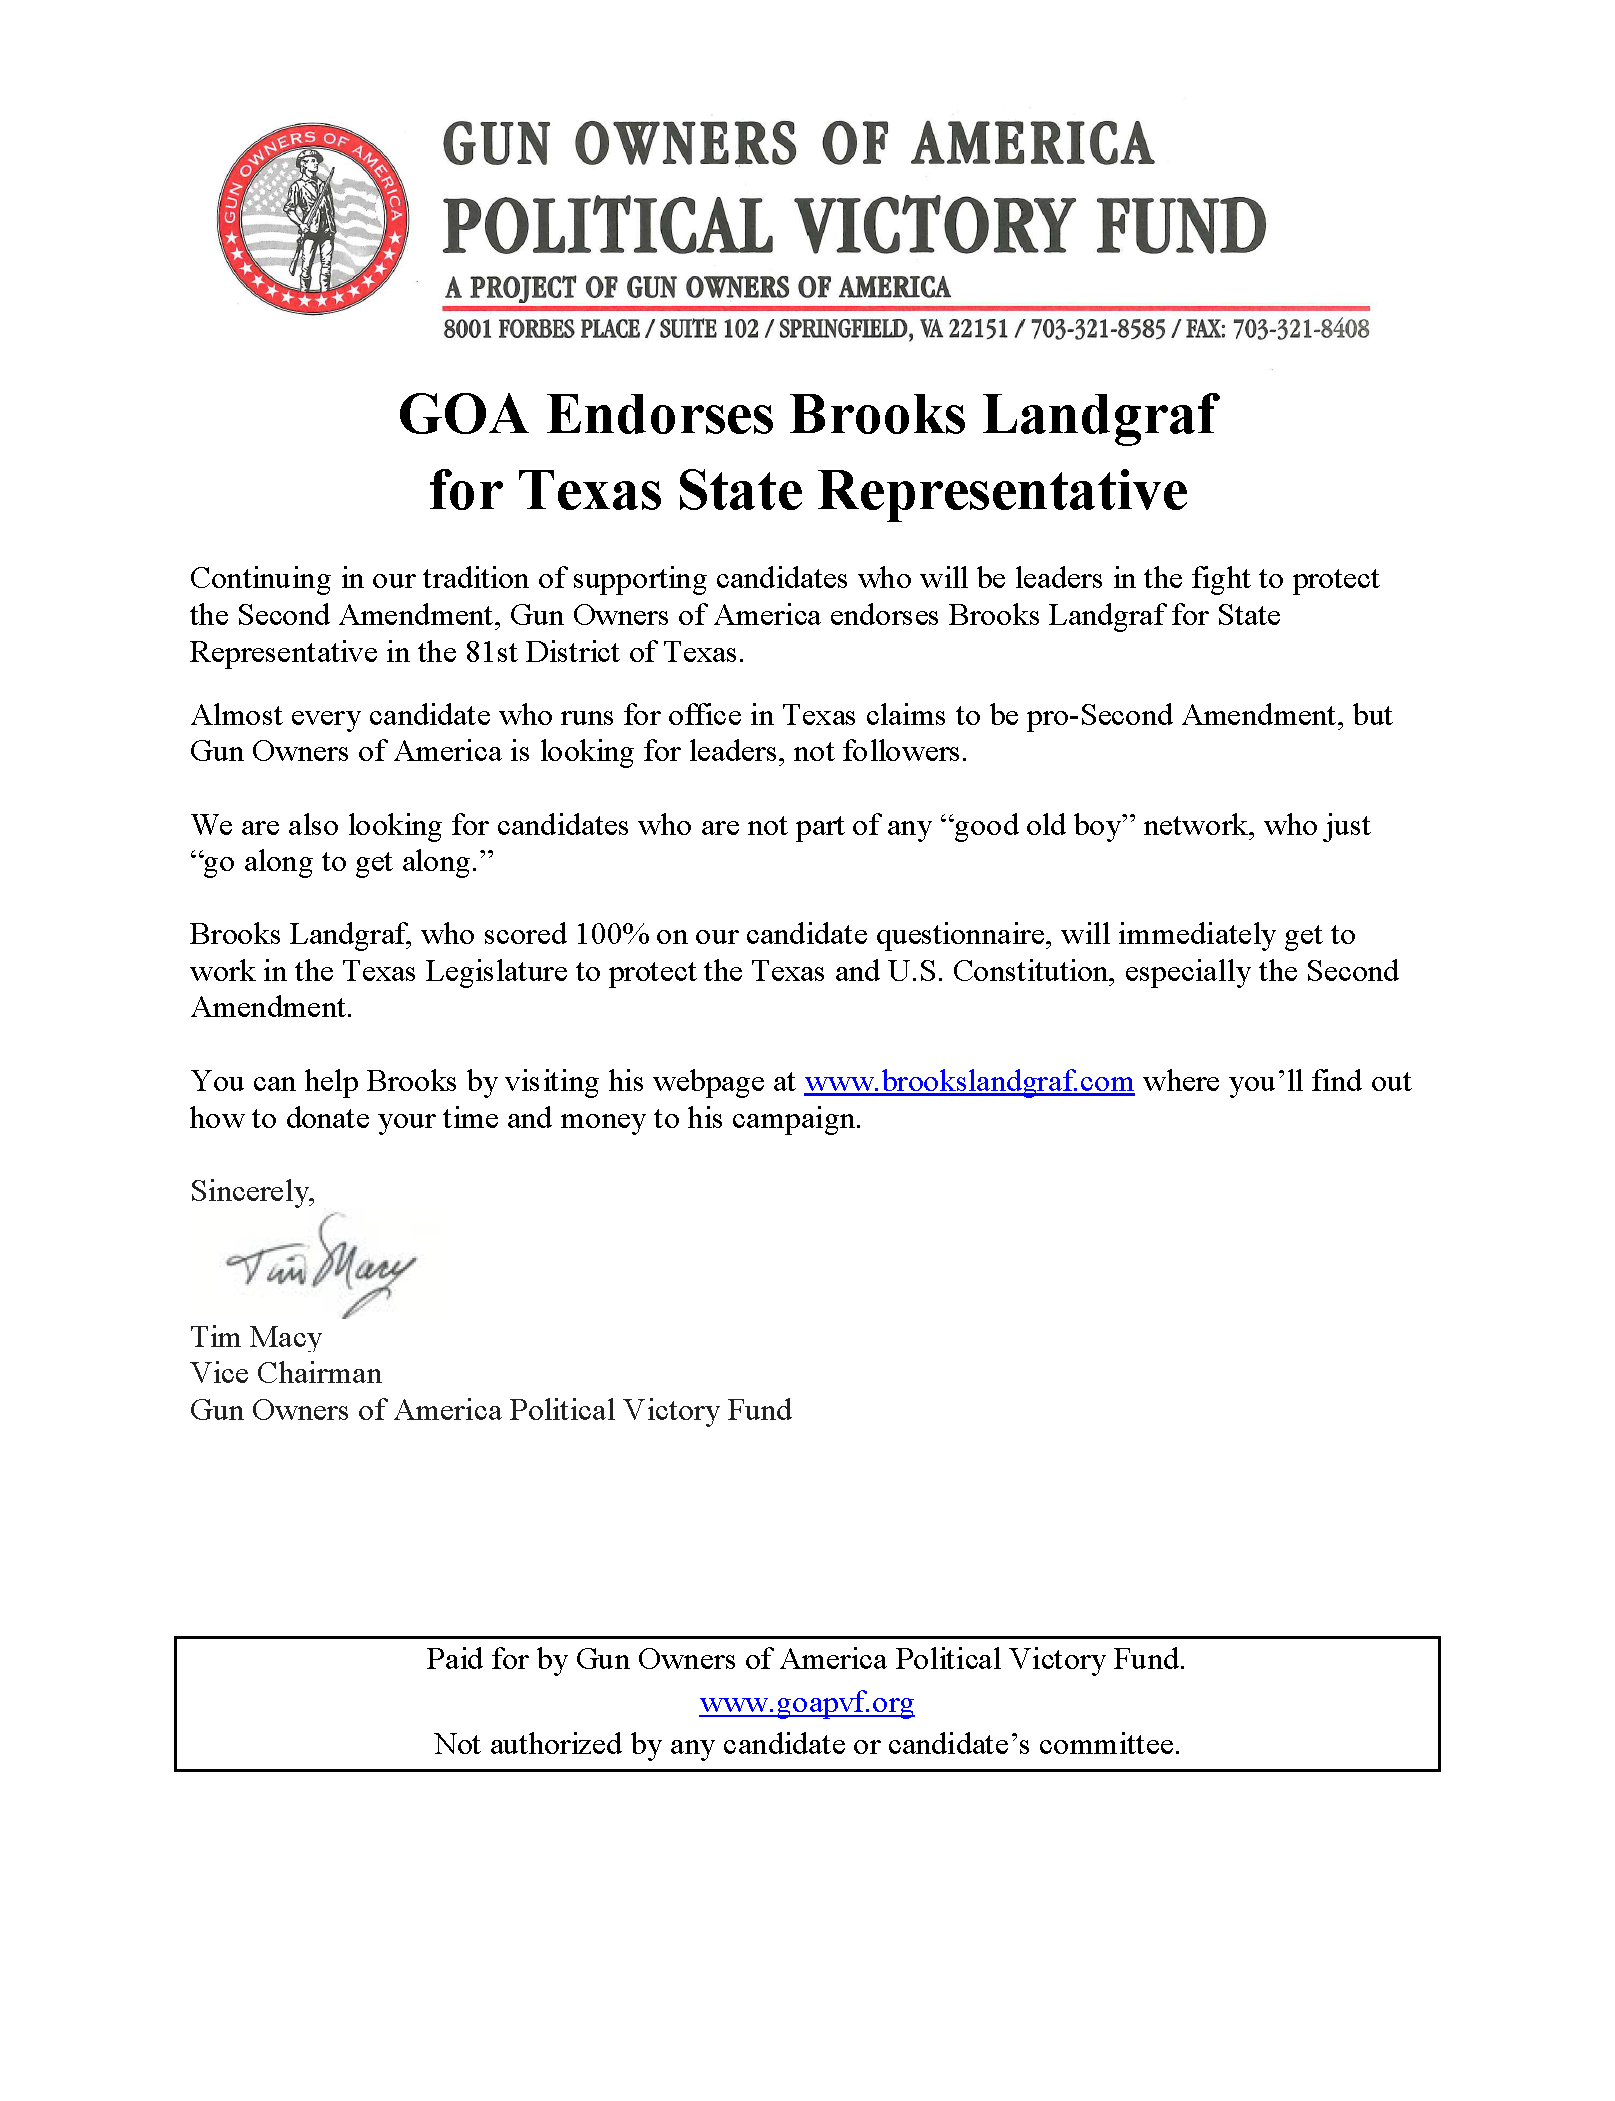 Brooks_Landgraf_Endorsement.png